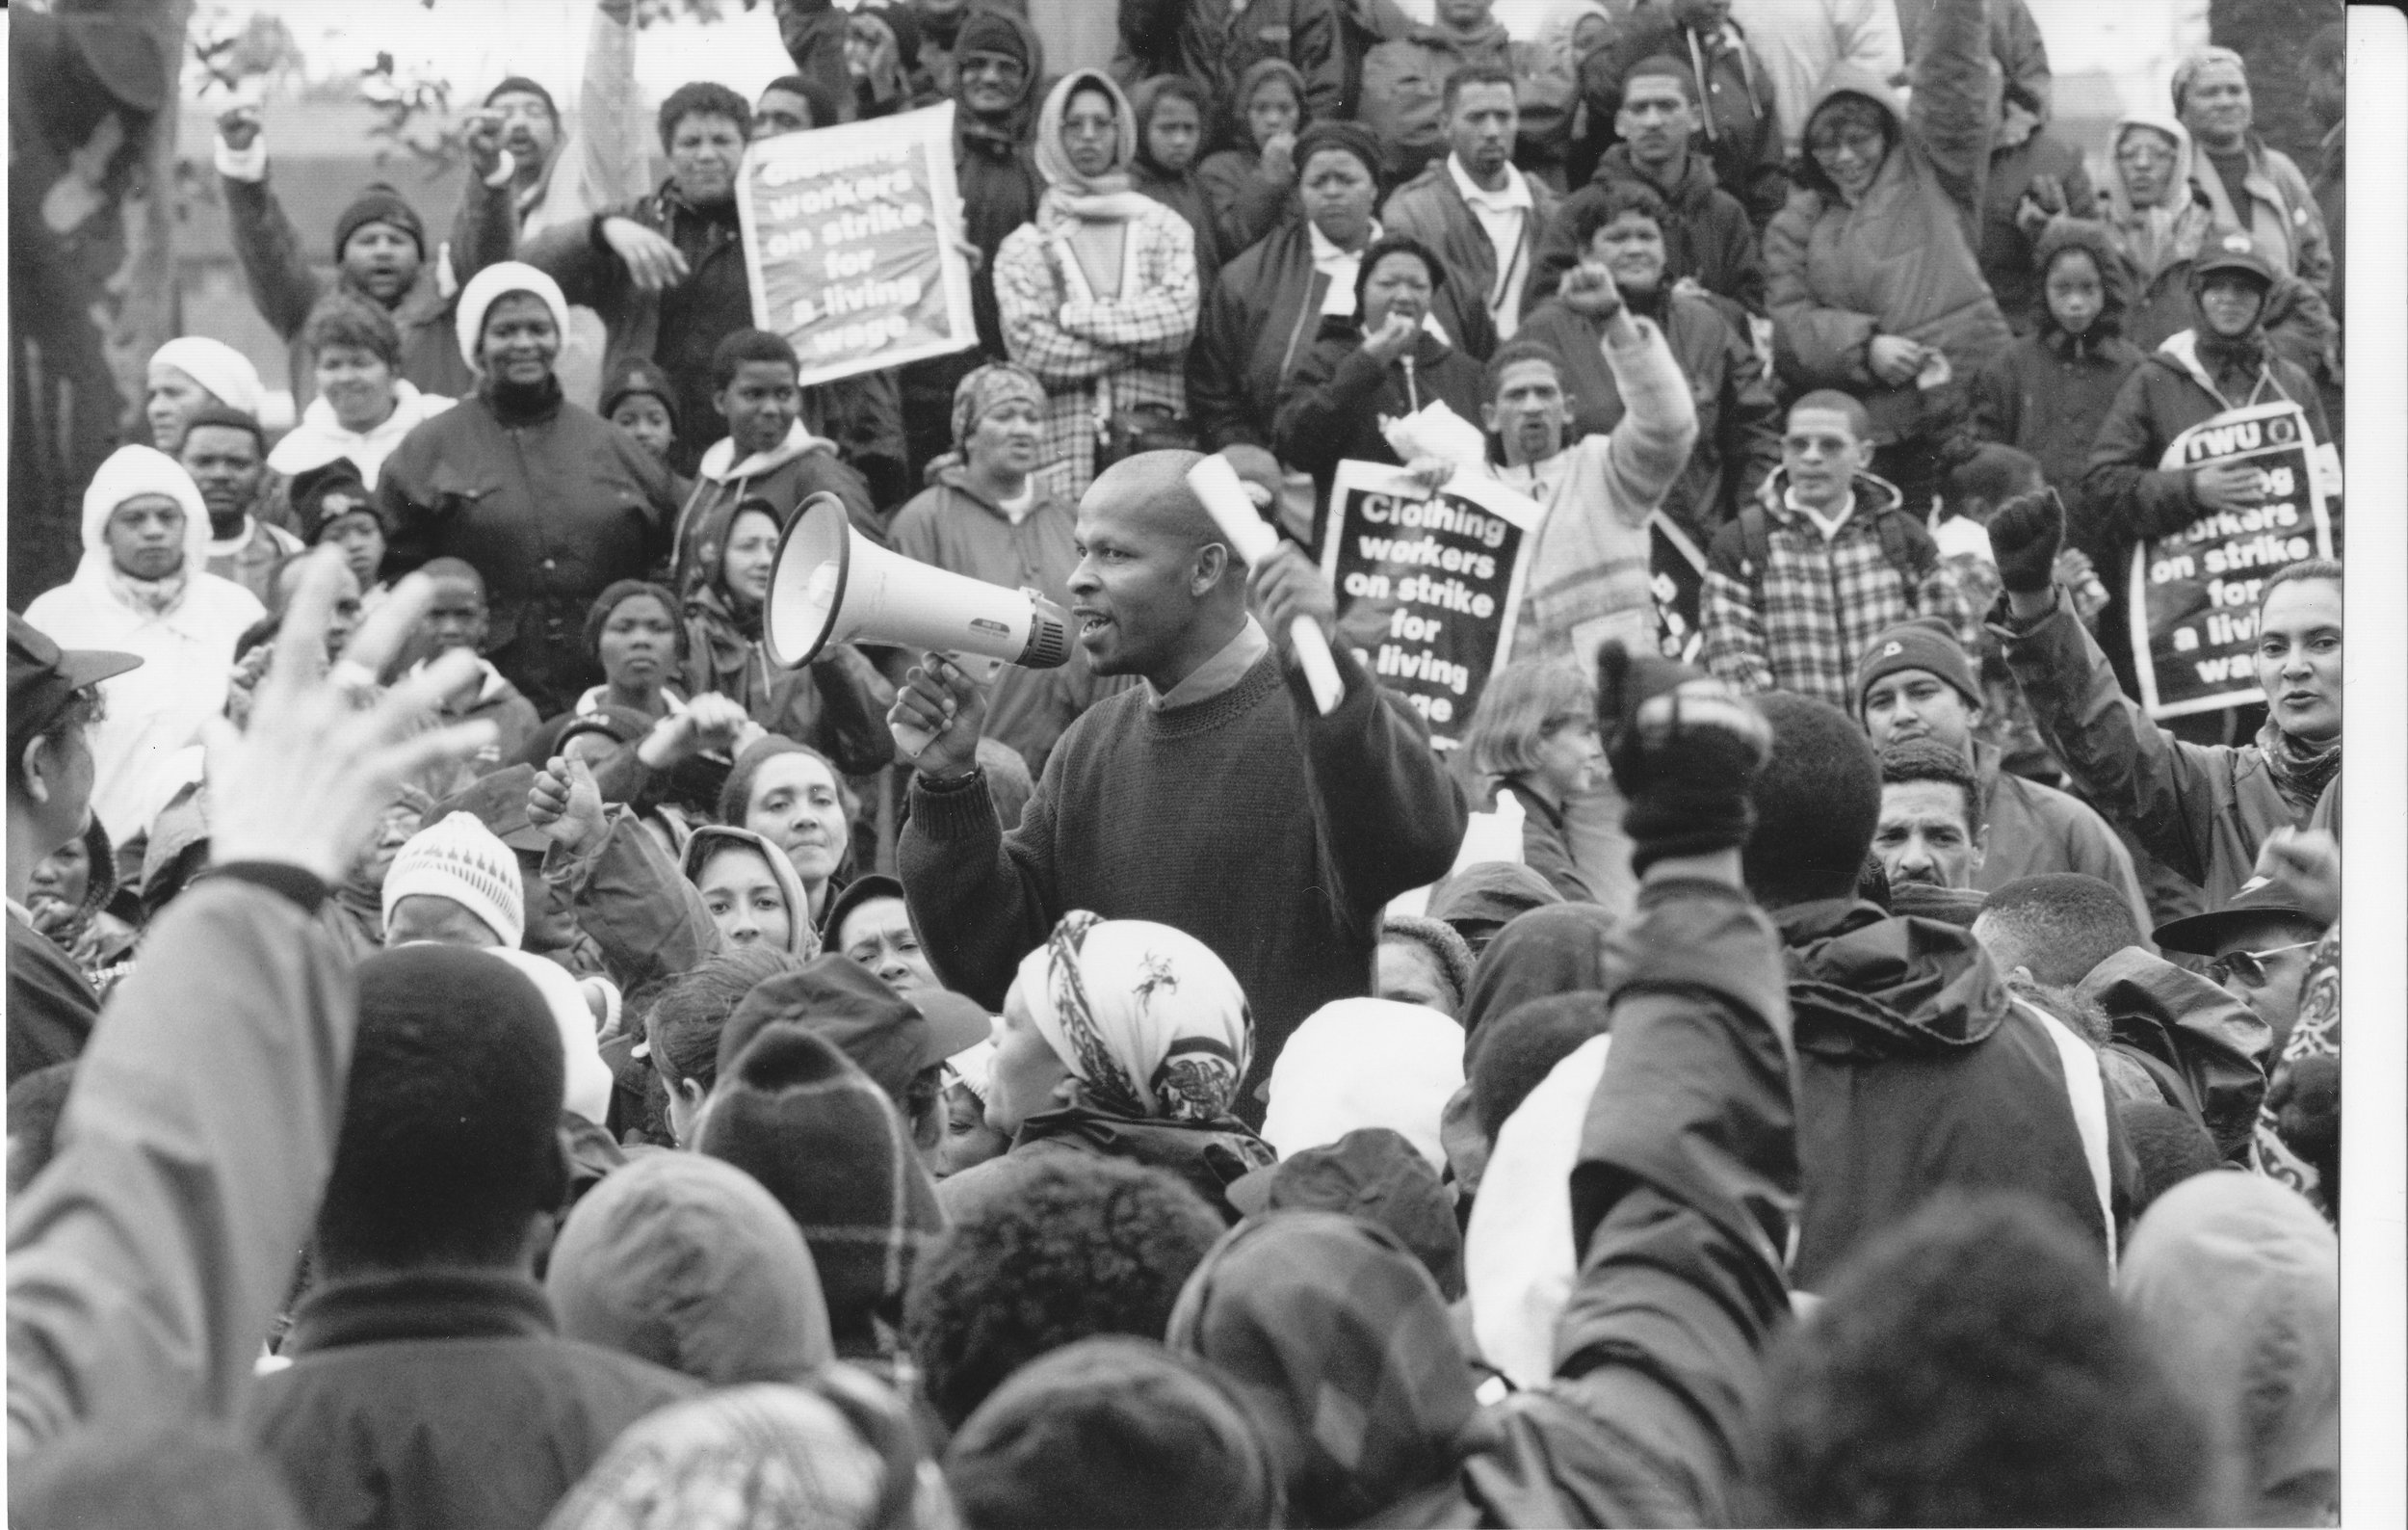 Richard Kawie addresses the crowd during the 1996 Strike.